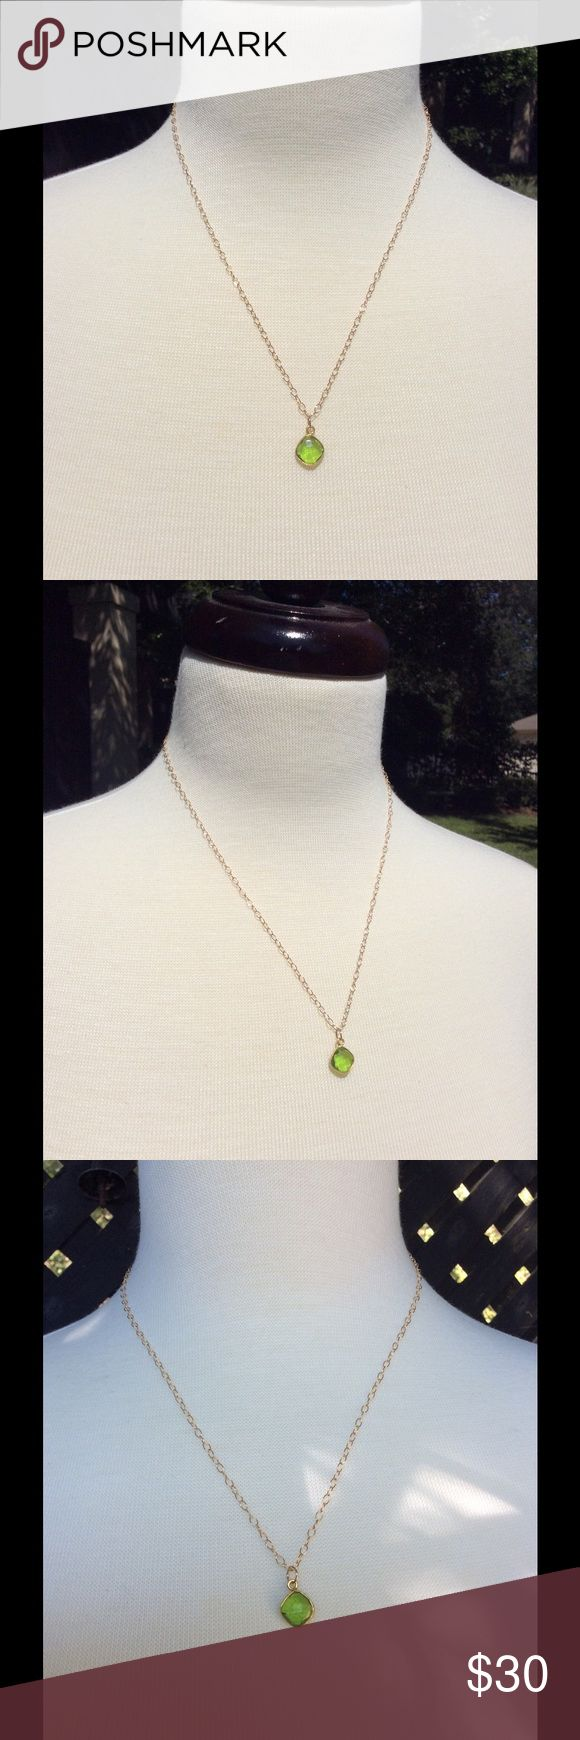 Peridot green necklace HOST PICK 11/24/16  19 inches long. Green peridot colored crystal encased in gold filled. 14k gold filled chain and lobster clasp. Handmade Jewelry Necklaces